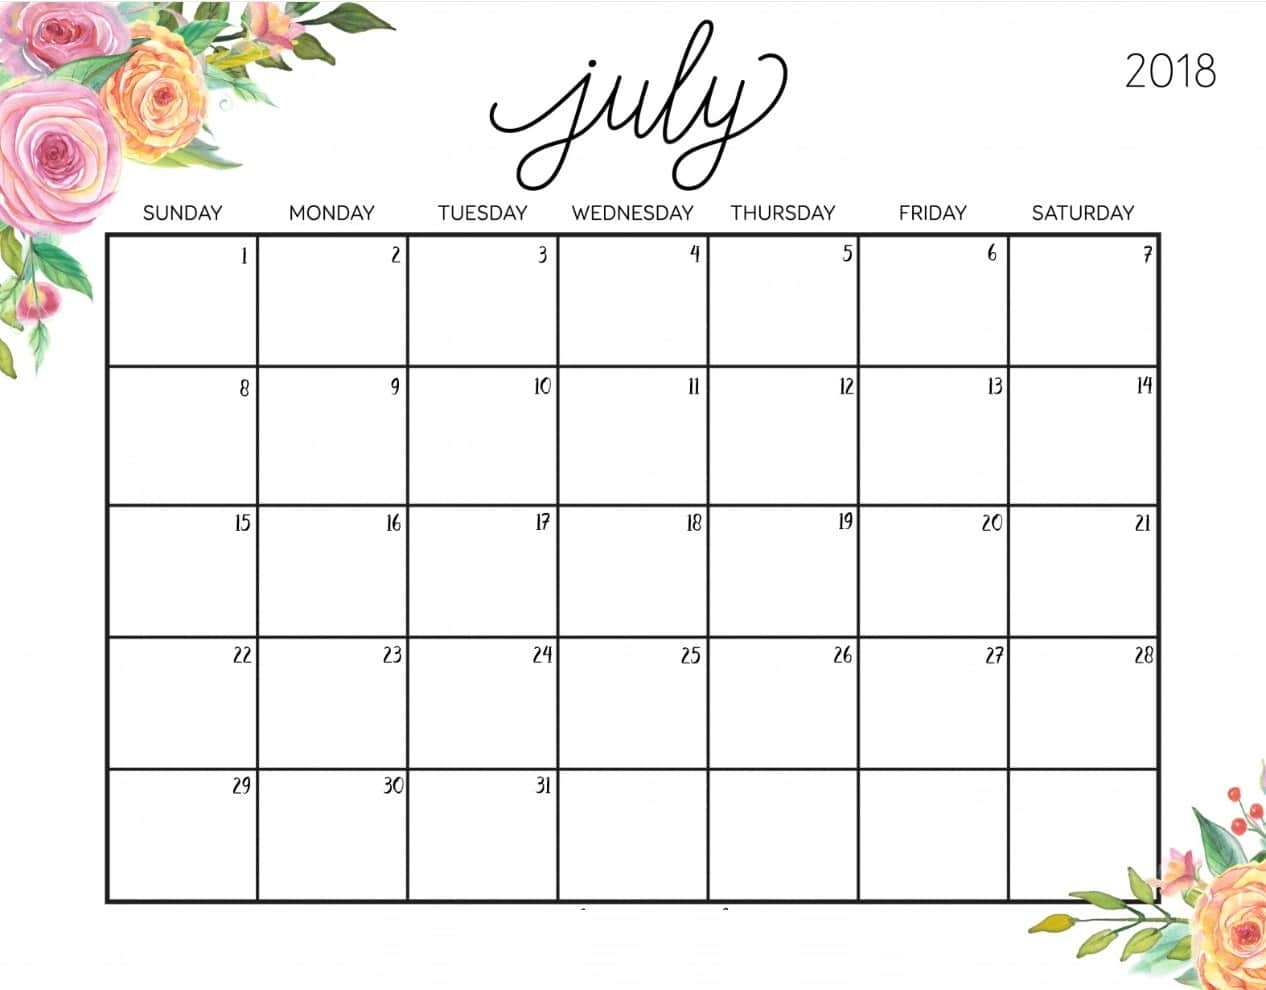 July Calendar Printable Cute Quote Images Hd Free